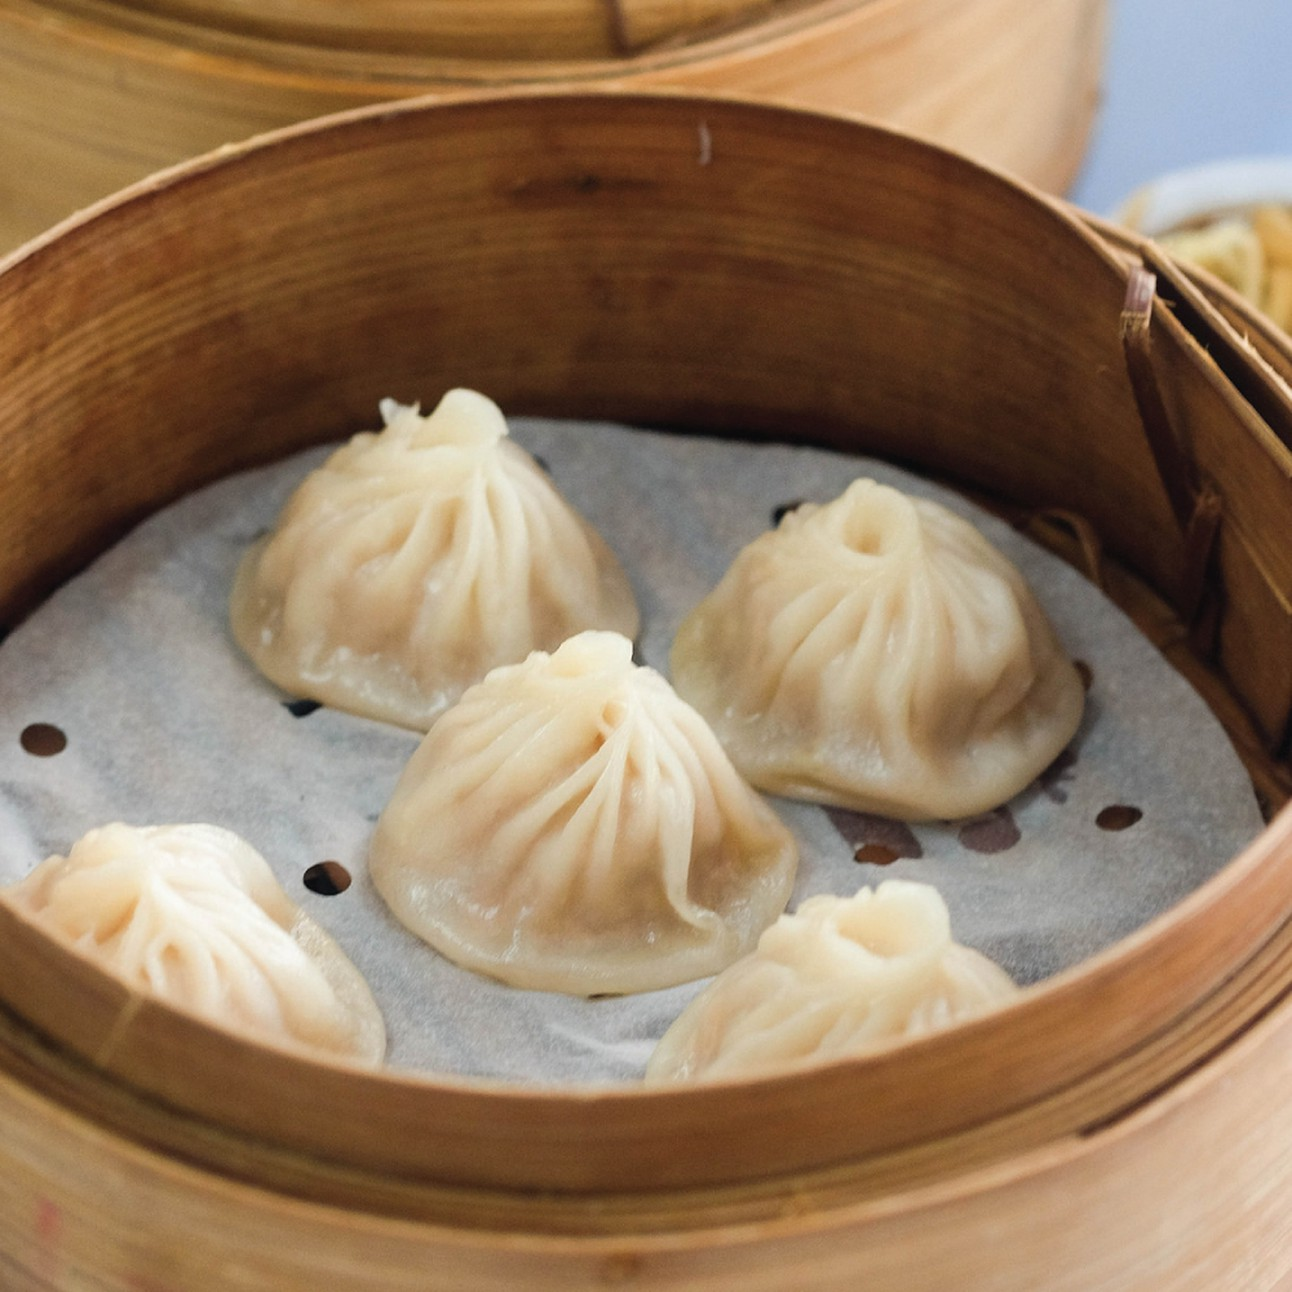 Soup dumplings from Maketto